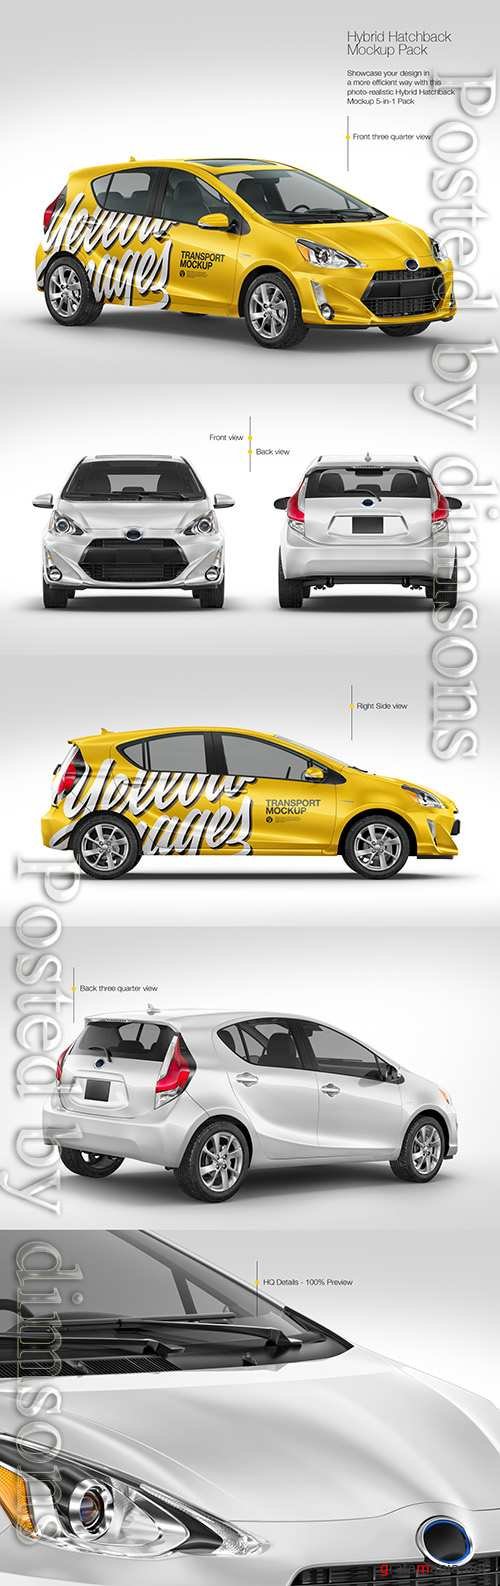 Hybrid Hatchback Car Mockup Pack TIF